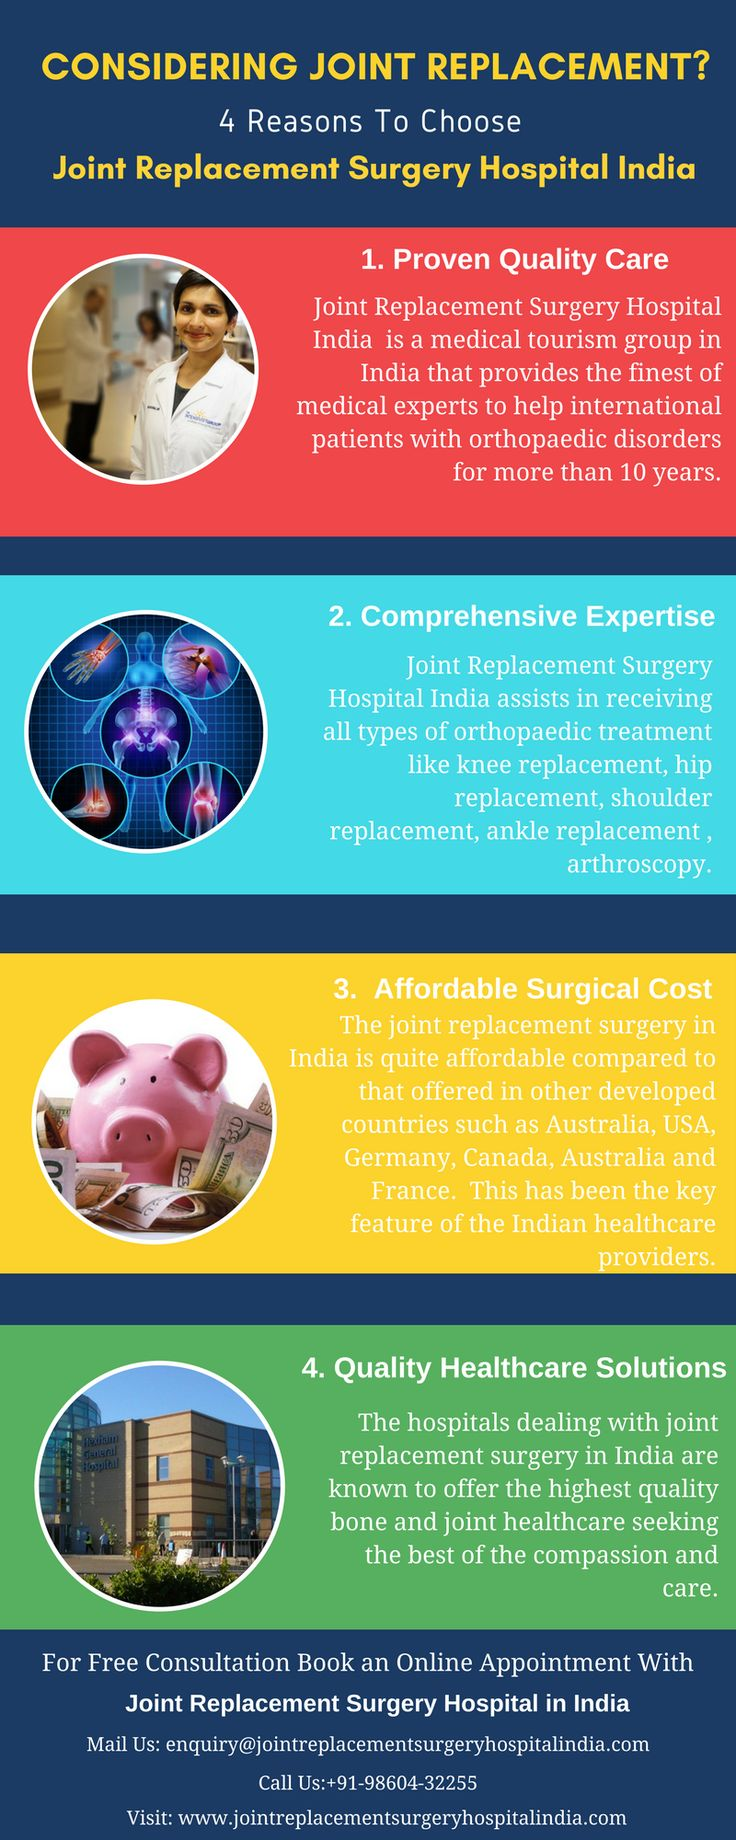 4 Reasons To Choose #Joint #Replacement #Surgery #Hospital #India